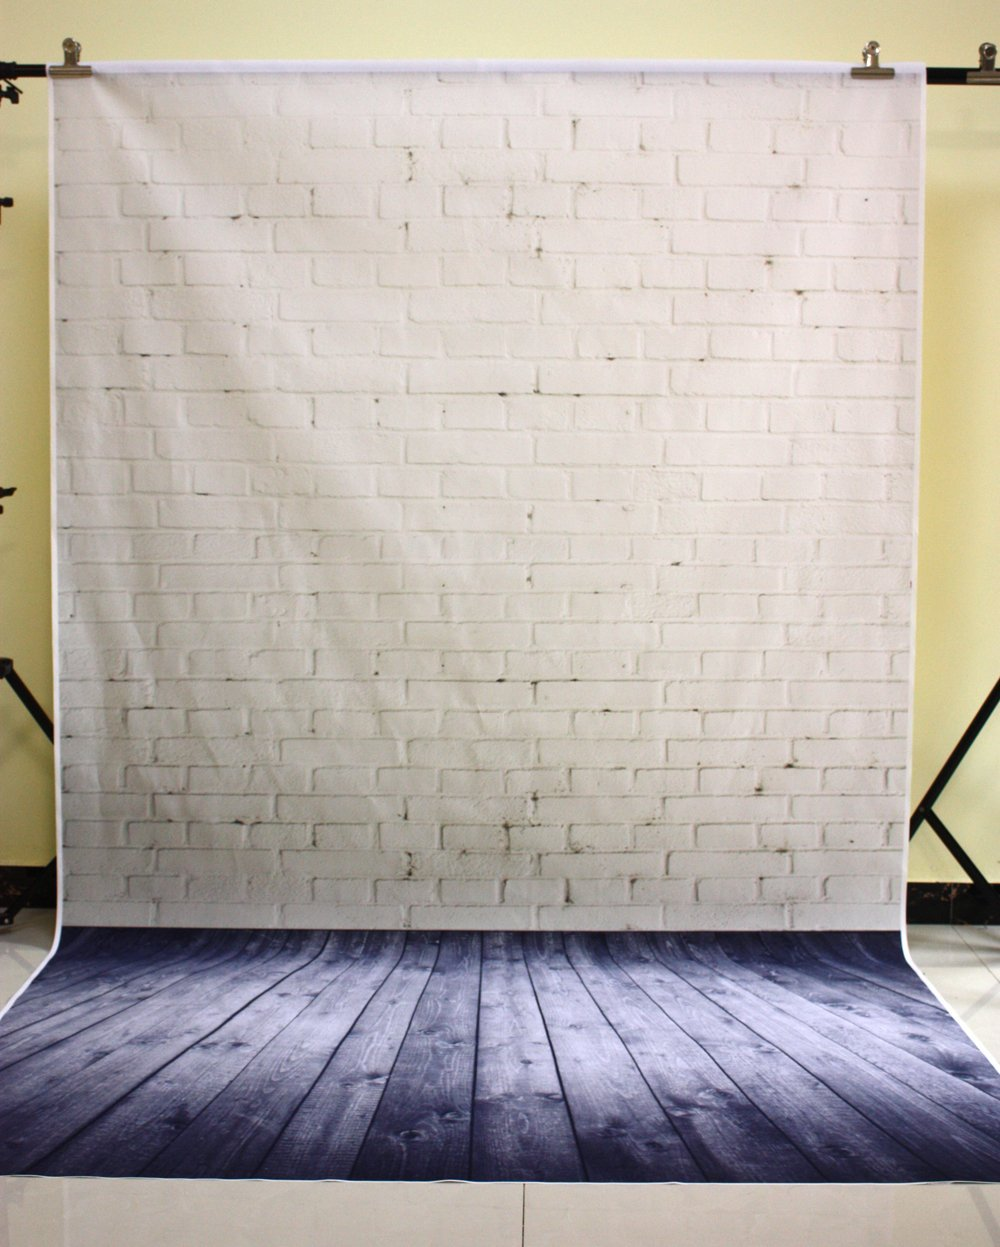 150X210CM Photography studio Green Screen Chroma key Background Polyester Backdrop for Photo Studio Dark Brick YU034 in Photo Studio Accessories from Consumer Electronics